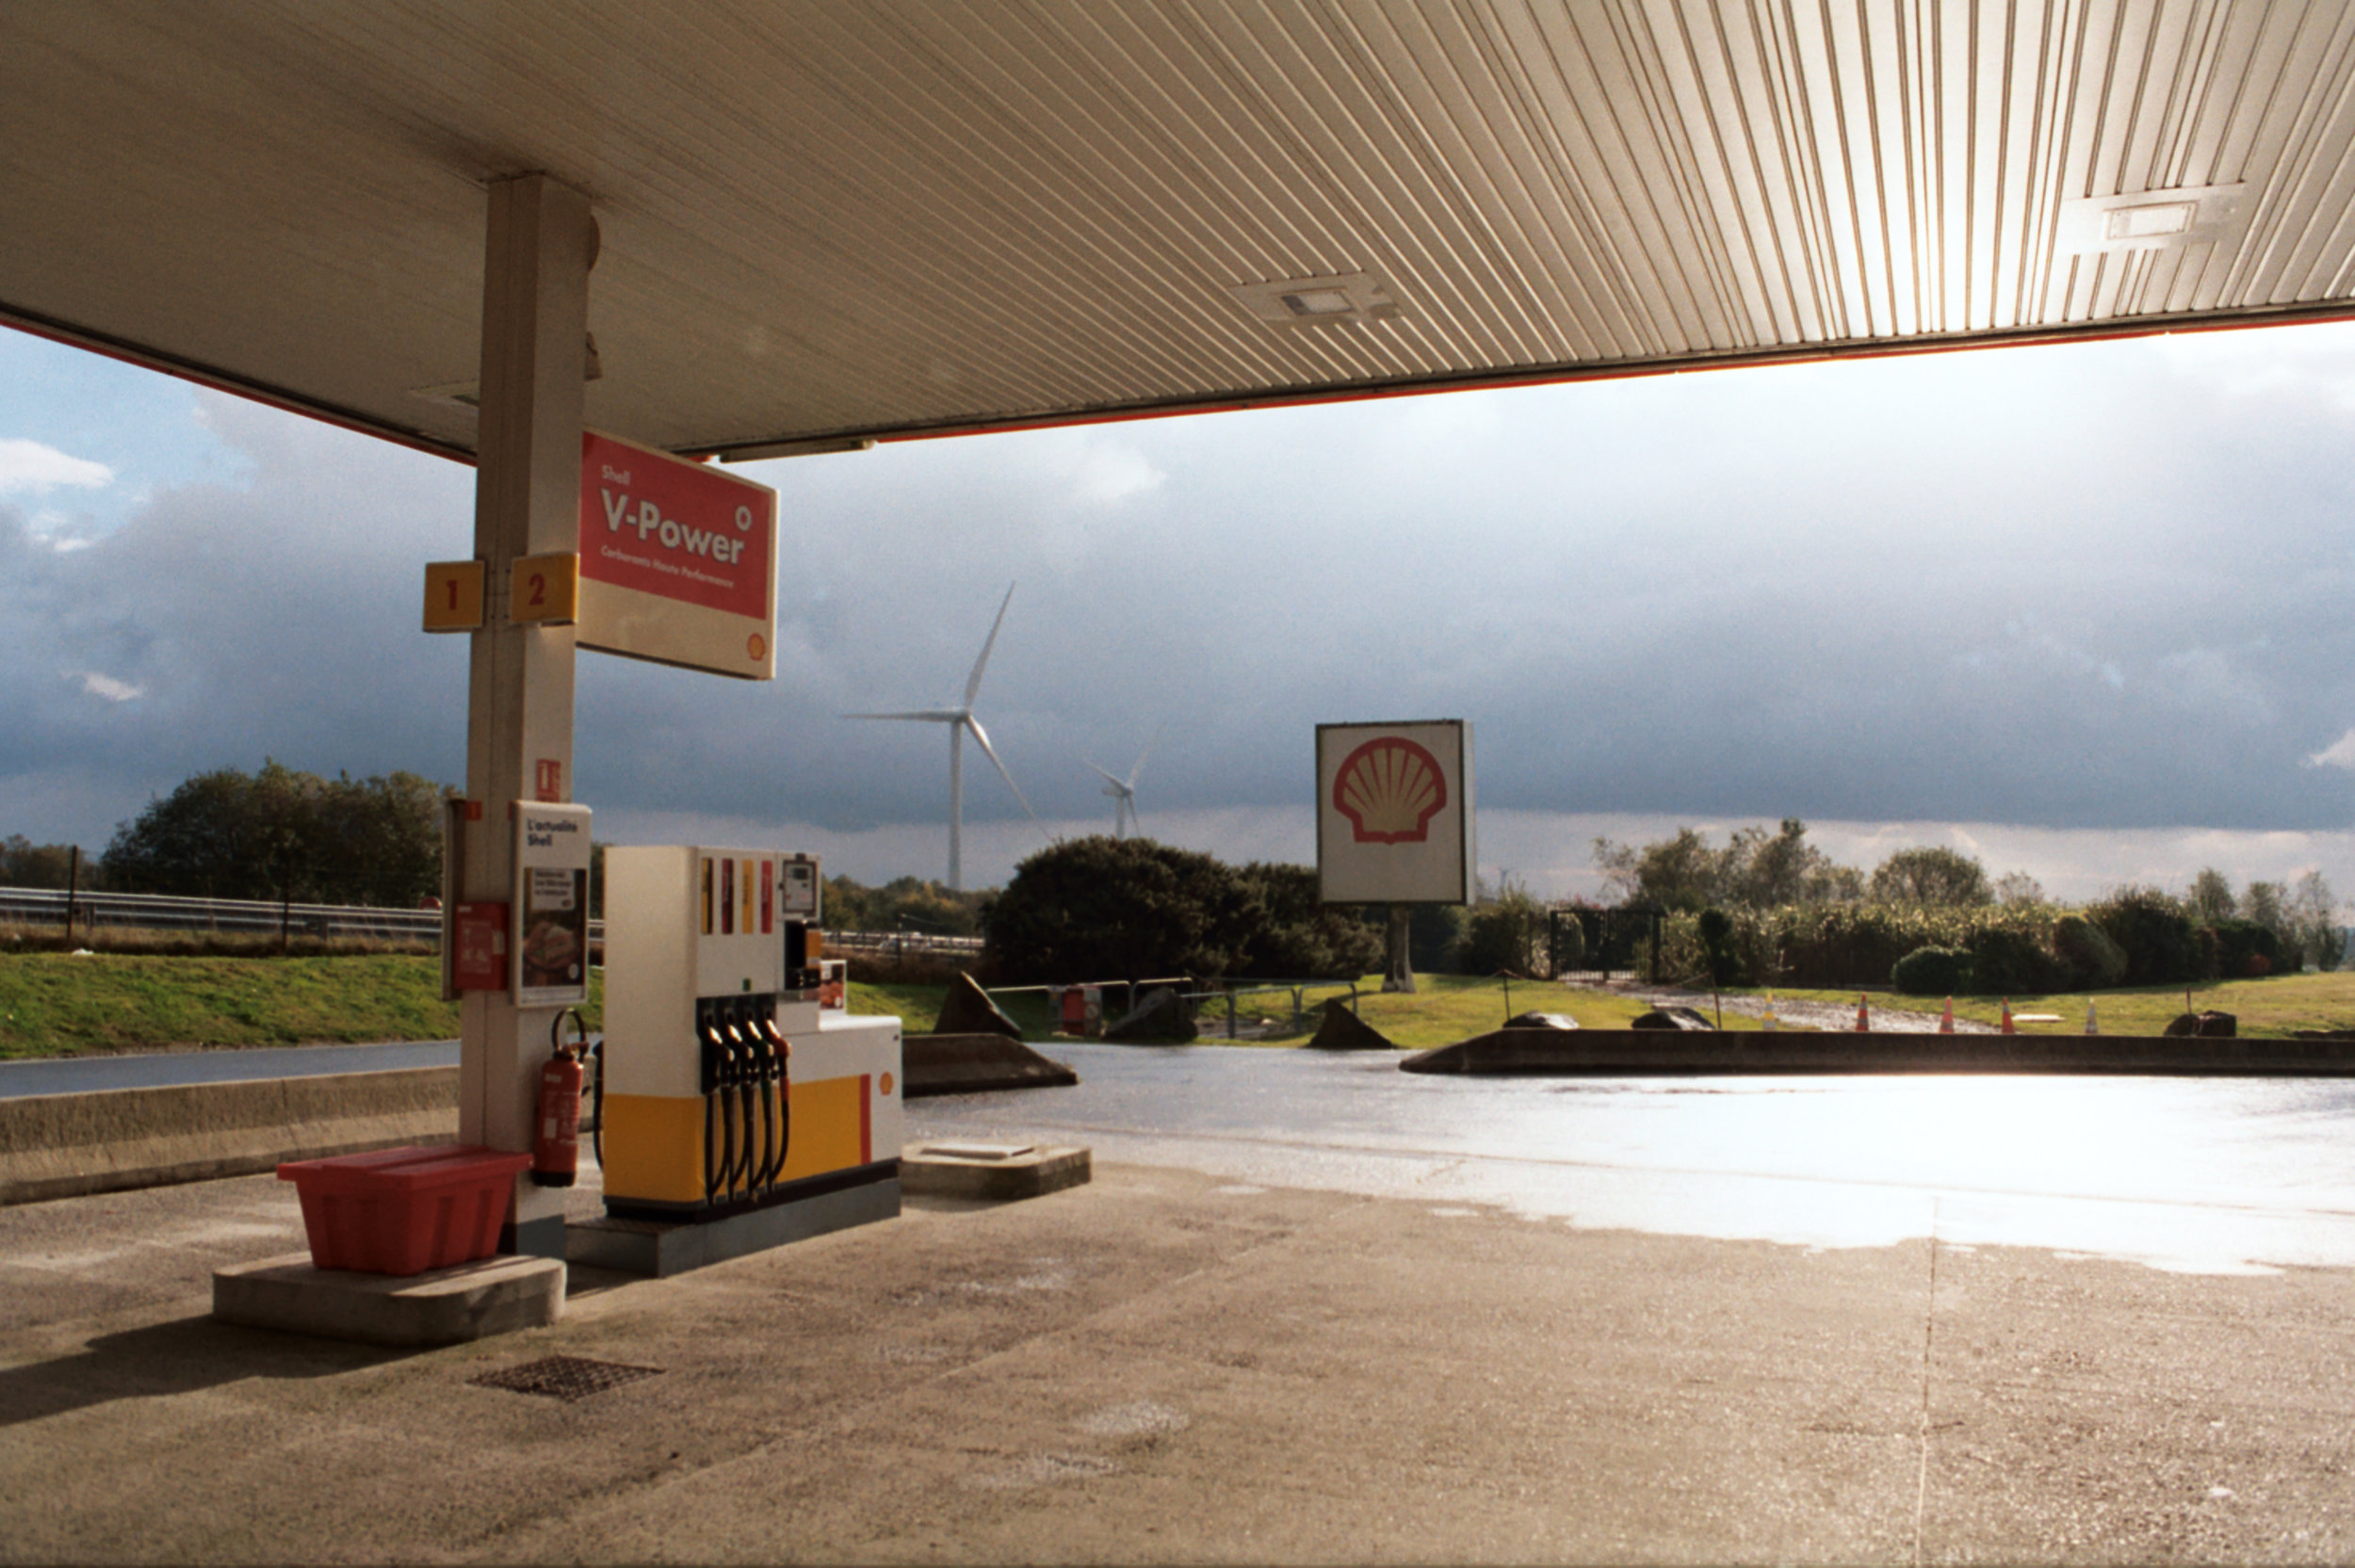 Gas station, Spain